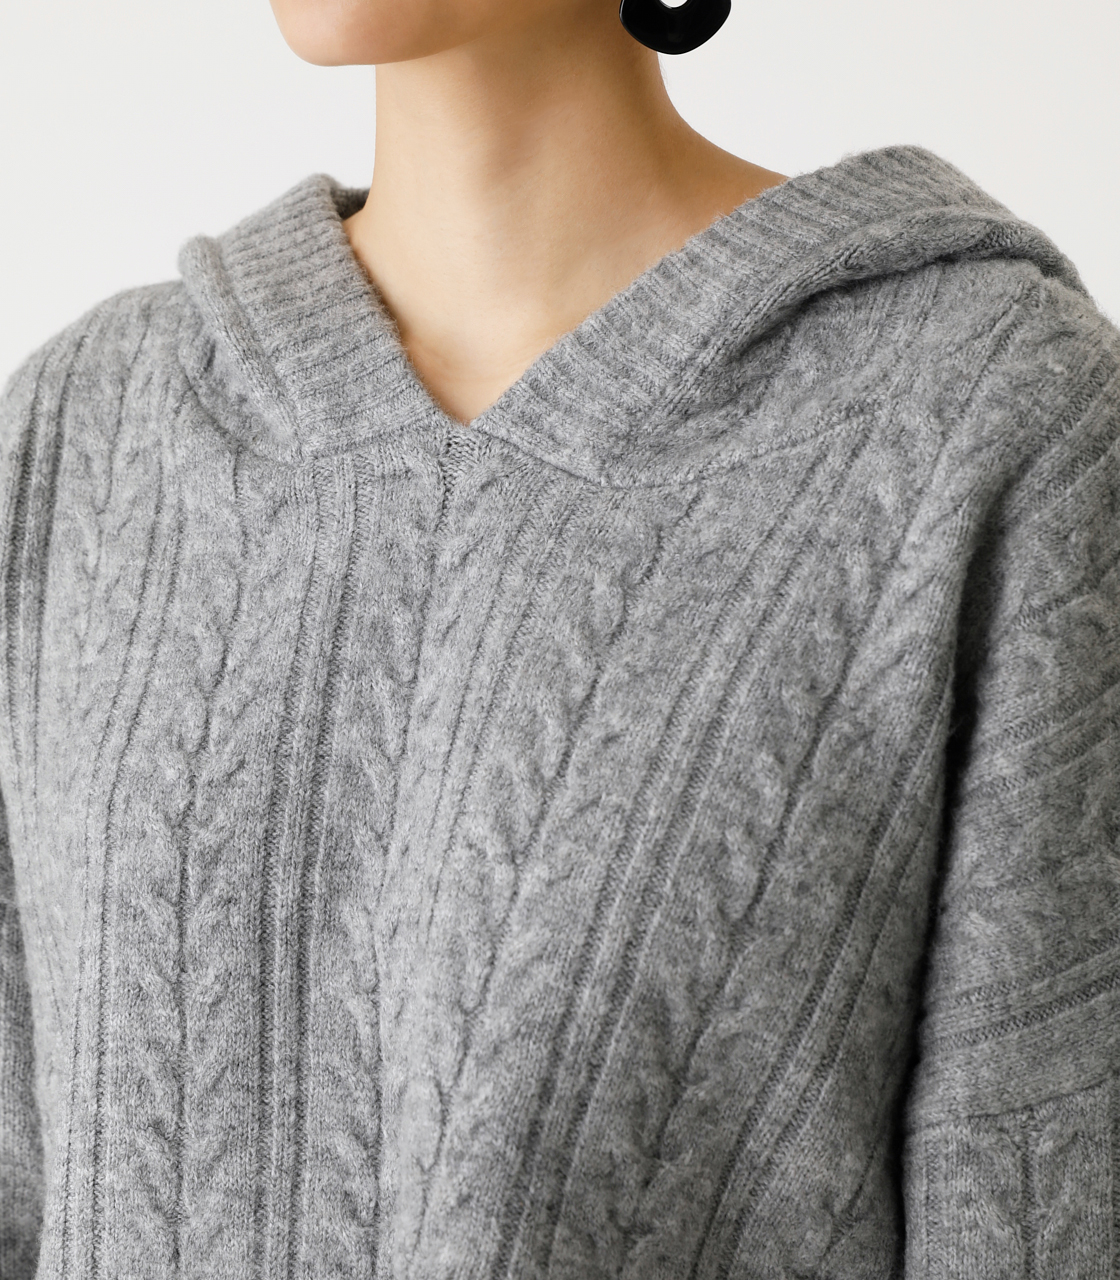 CABLE KNIT HOODIE/ケーブルニットフーディ 詳細画像 T.GRY 7